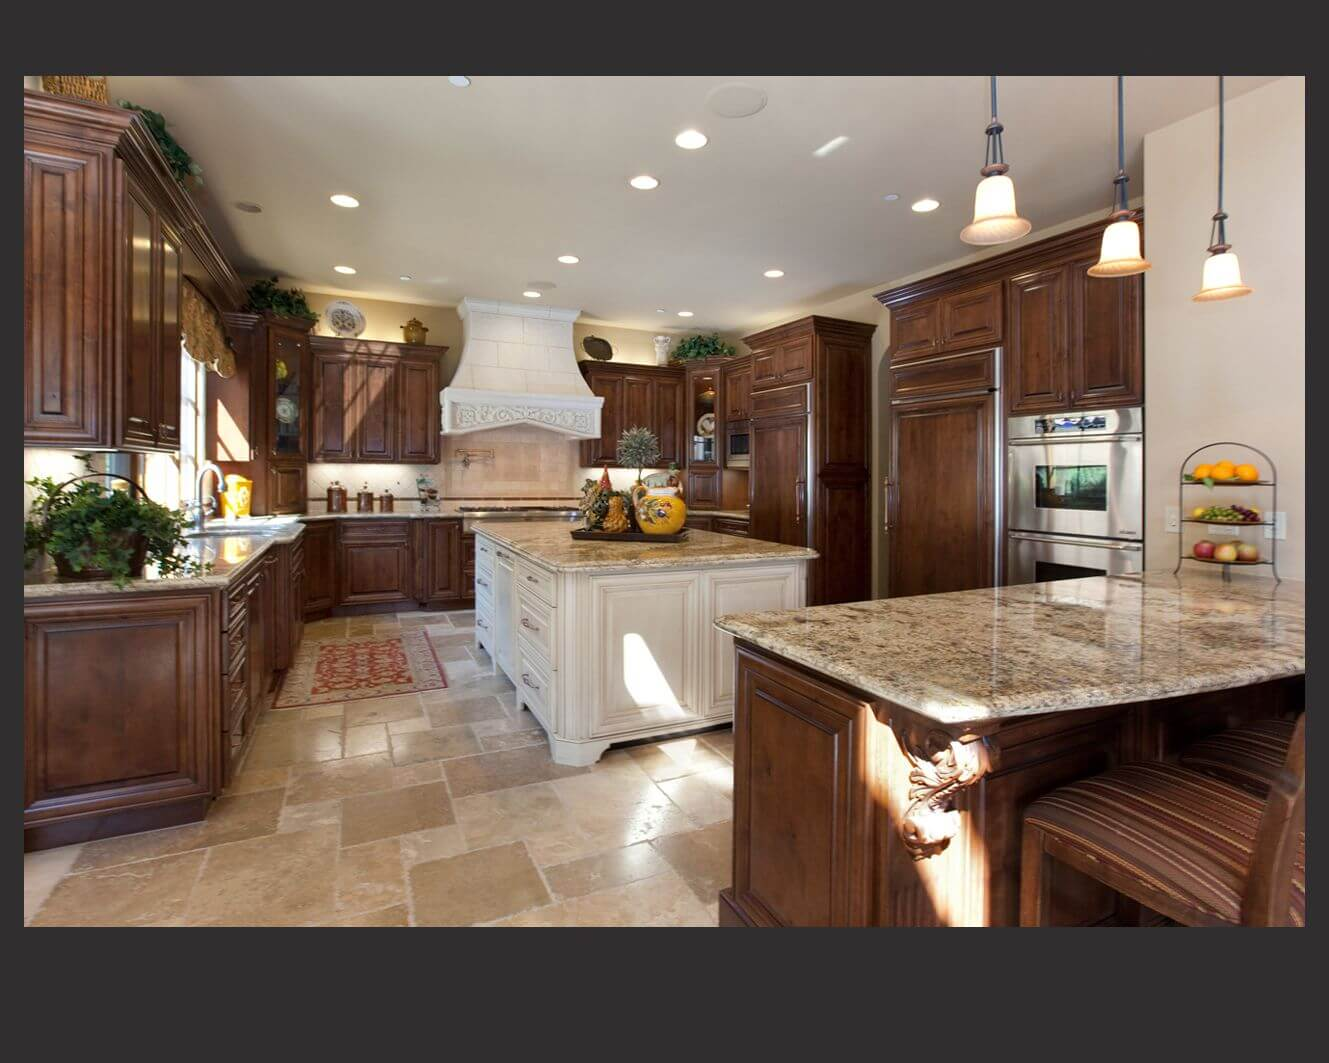 kitchen wood cabinets faucets at costco 52 dark kitchens with or black 2019 richly detailed u shaped centers cabinetry around large white painted